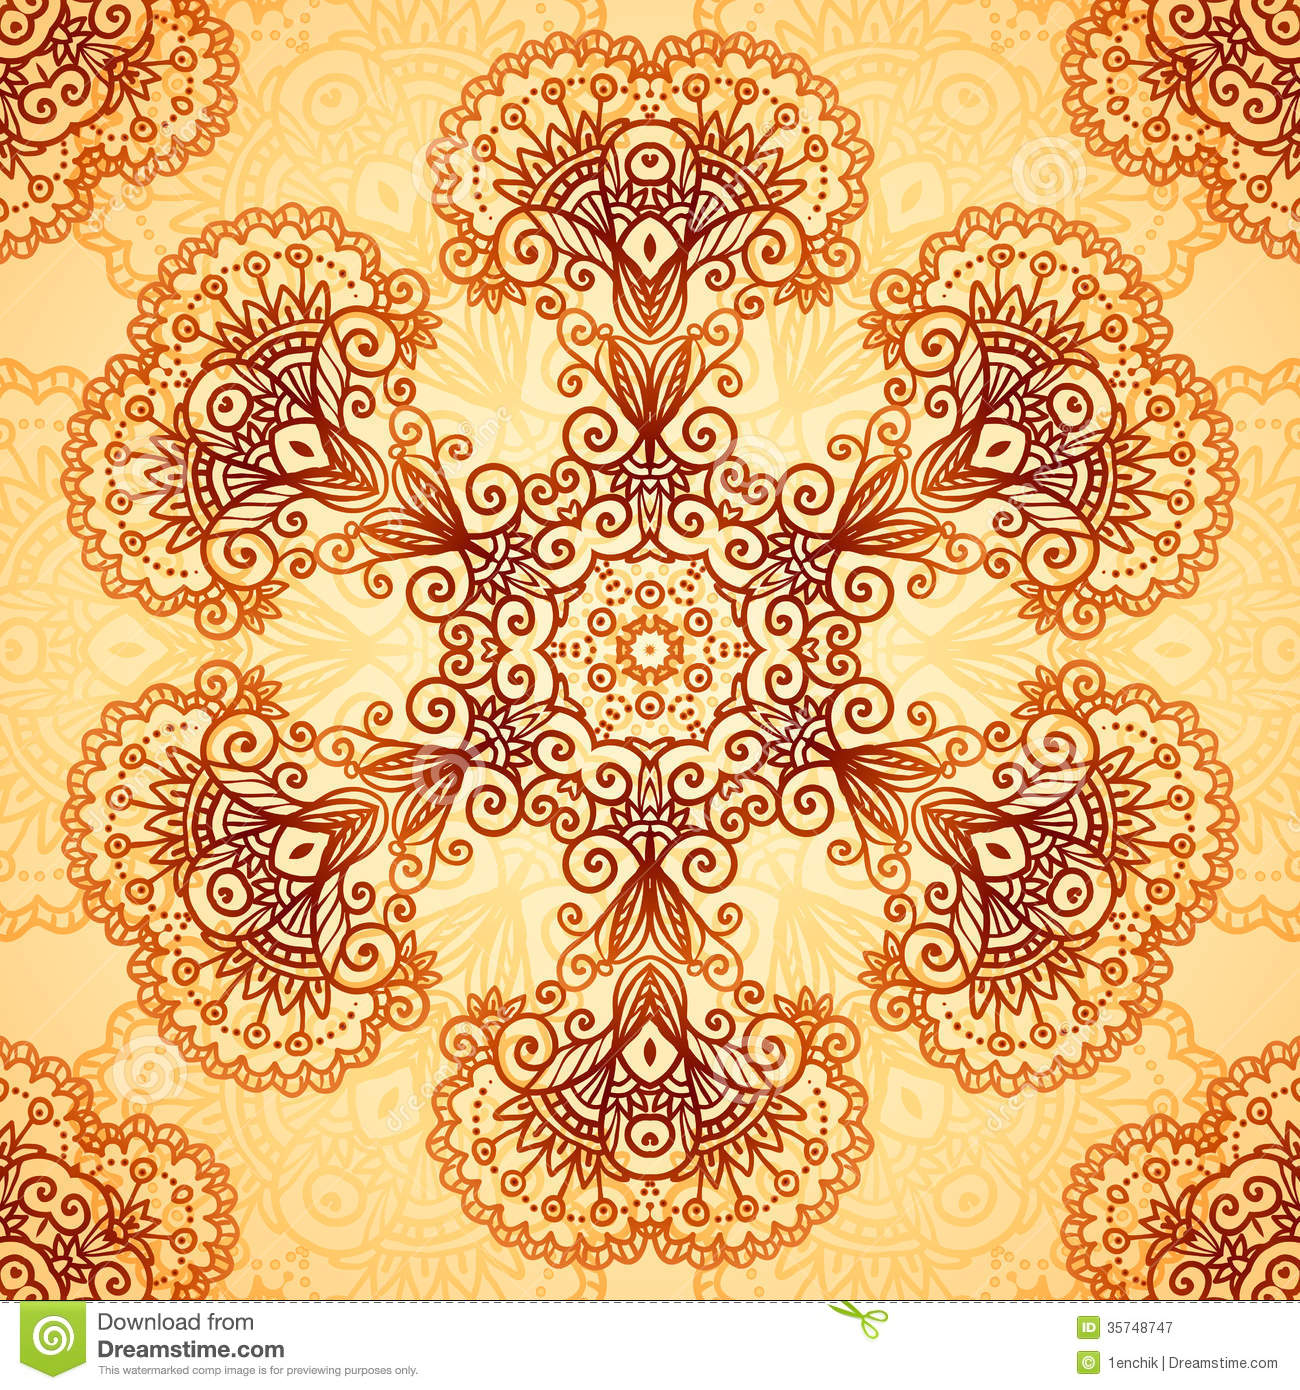 Mehndi Circle Vector : Ornate vintage circle pattern in mehndi style royalty free